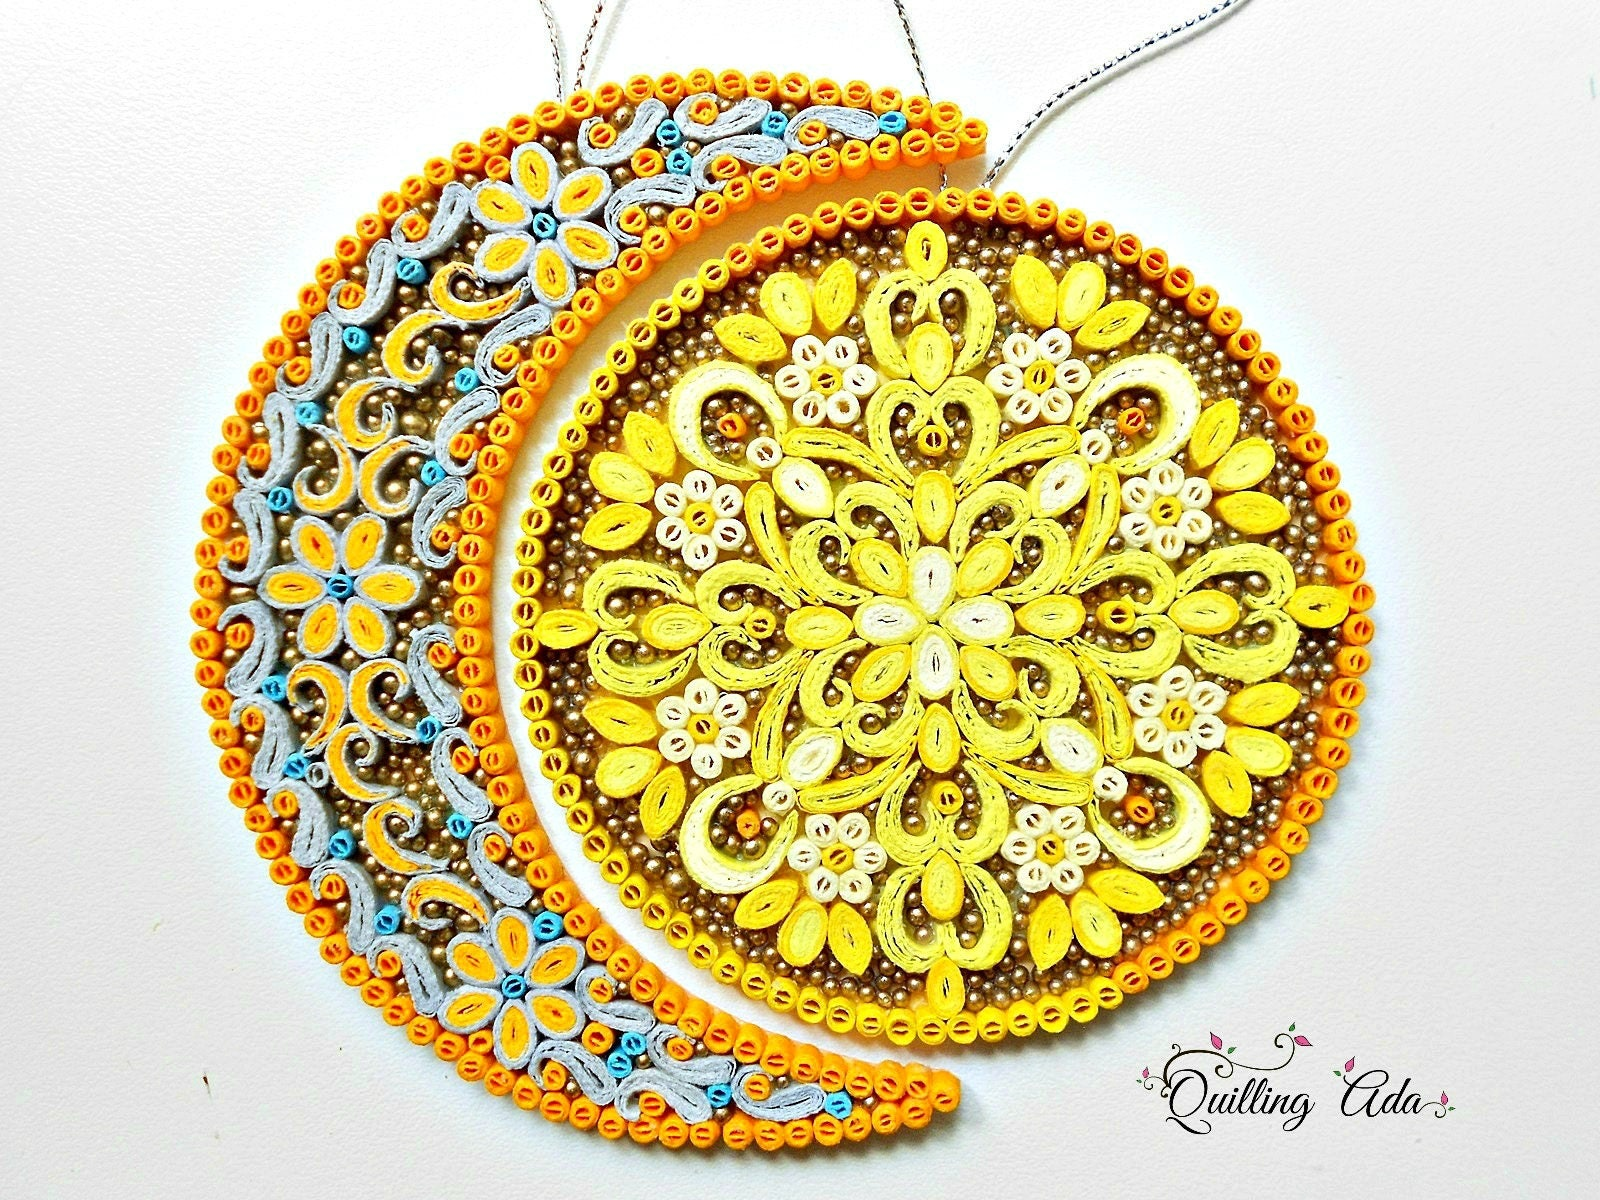 Quilled Sun/ Moon-PaperSun/ Moon-Paper Art-Wall Art-wall decor-gift ...